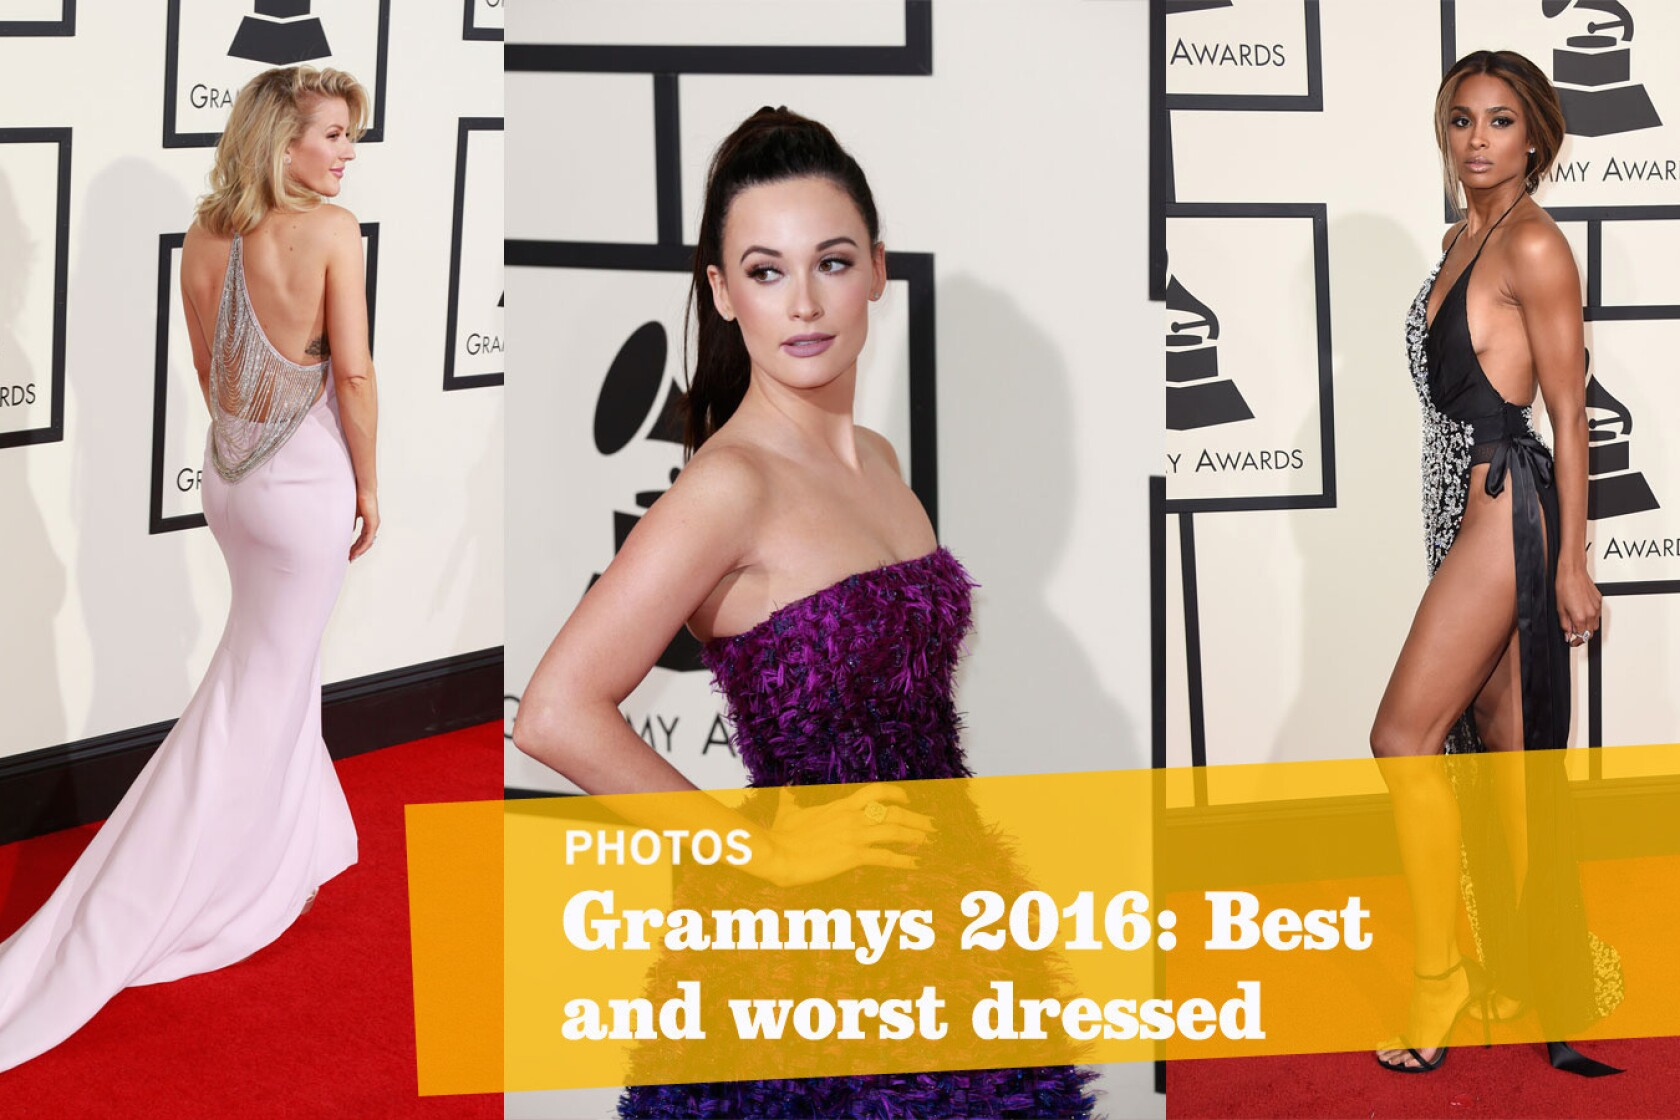 Grammys fashion trends: Strategic skin-baring, high-slits and taking black to the next level